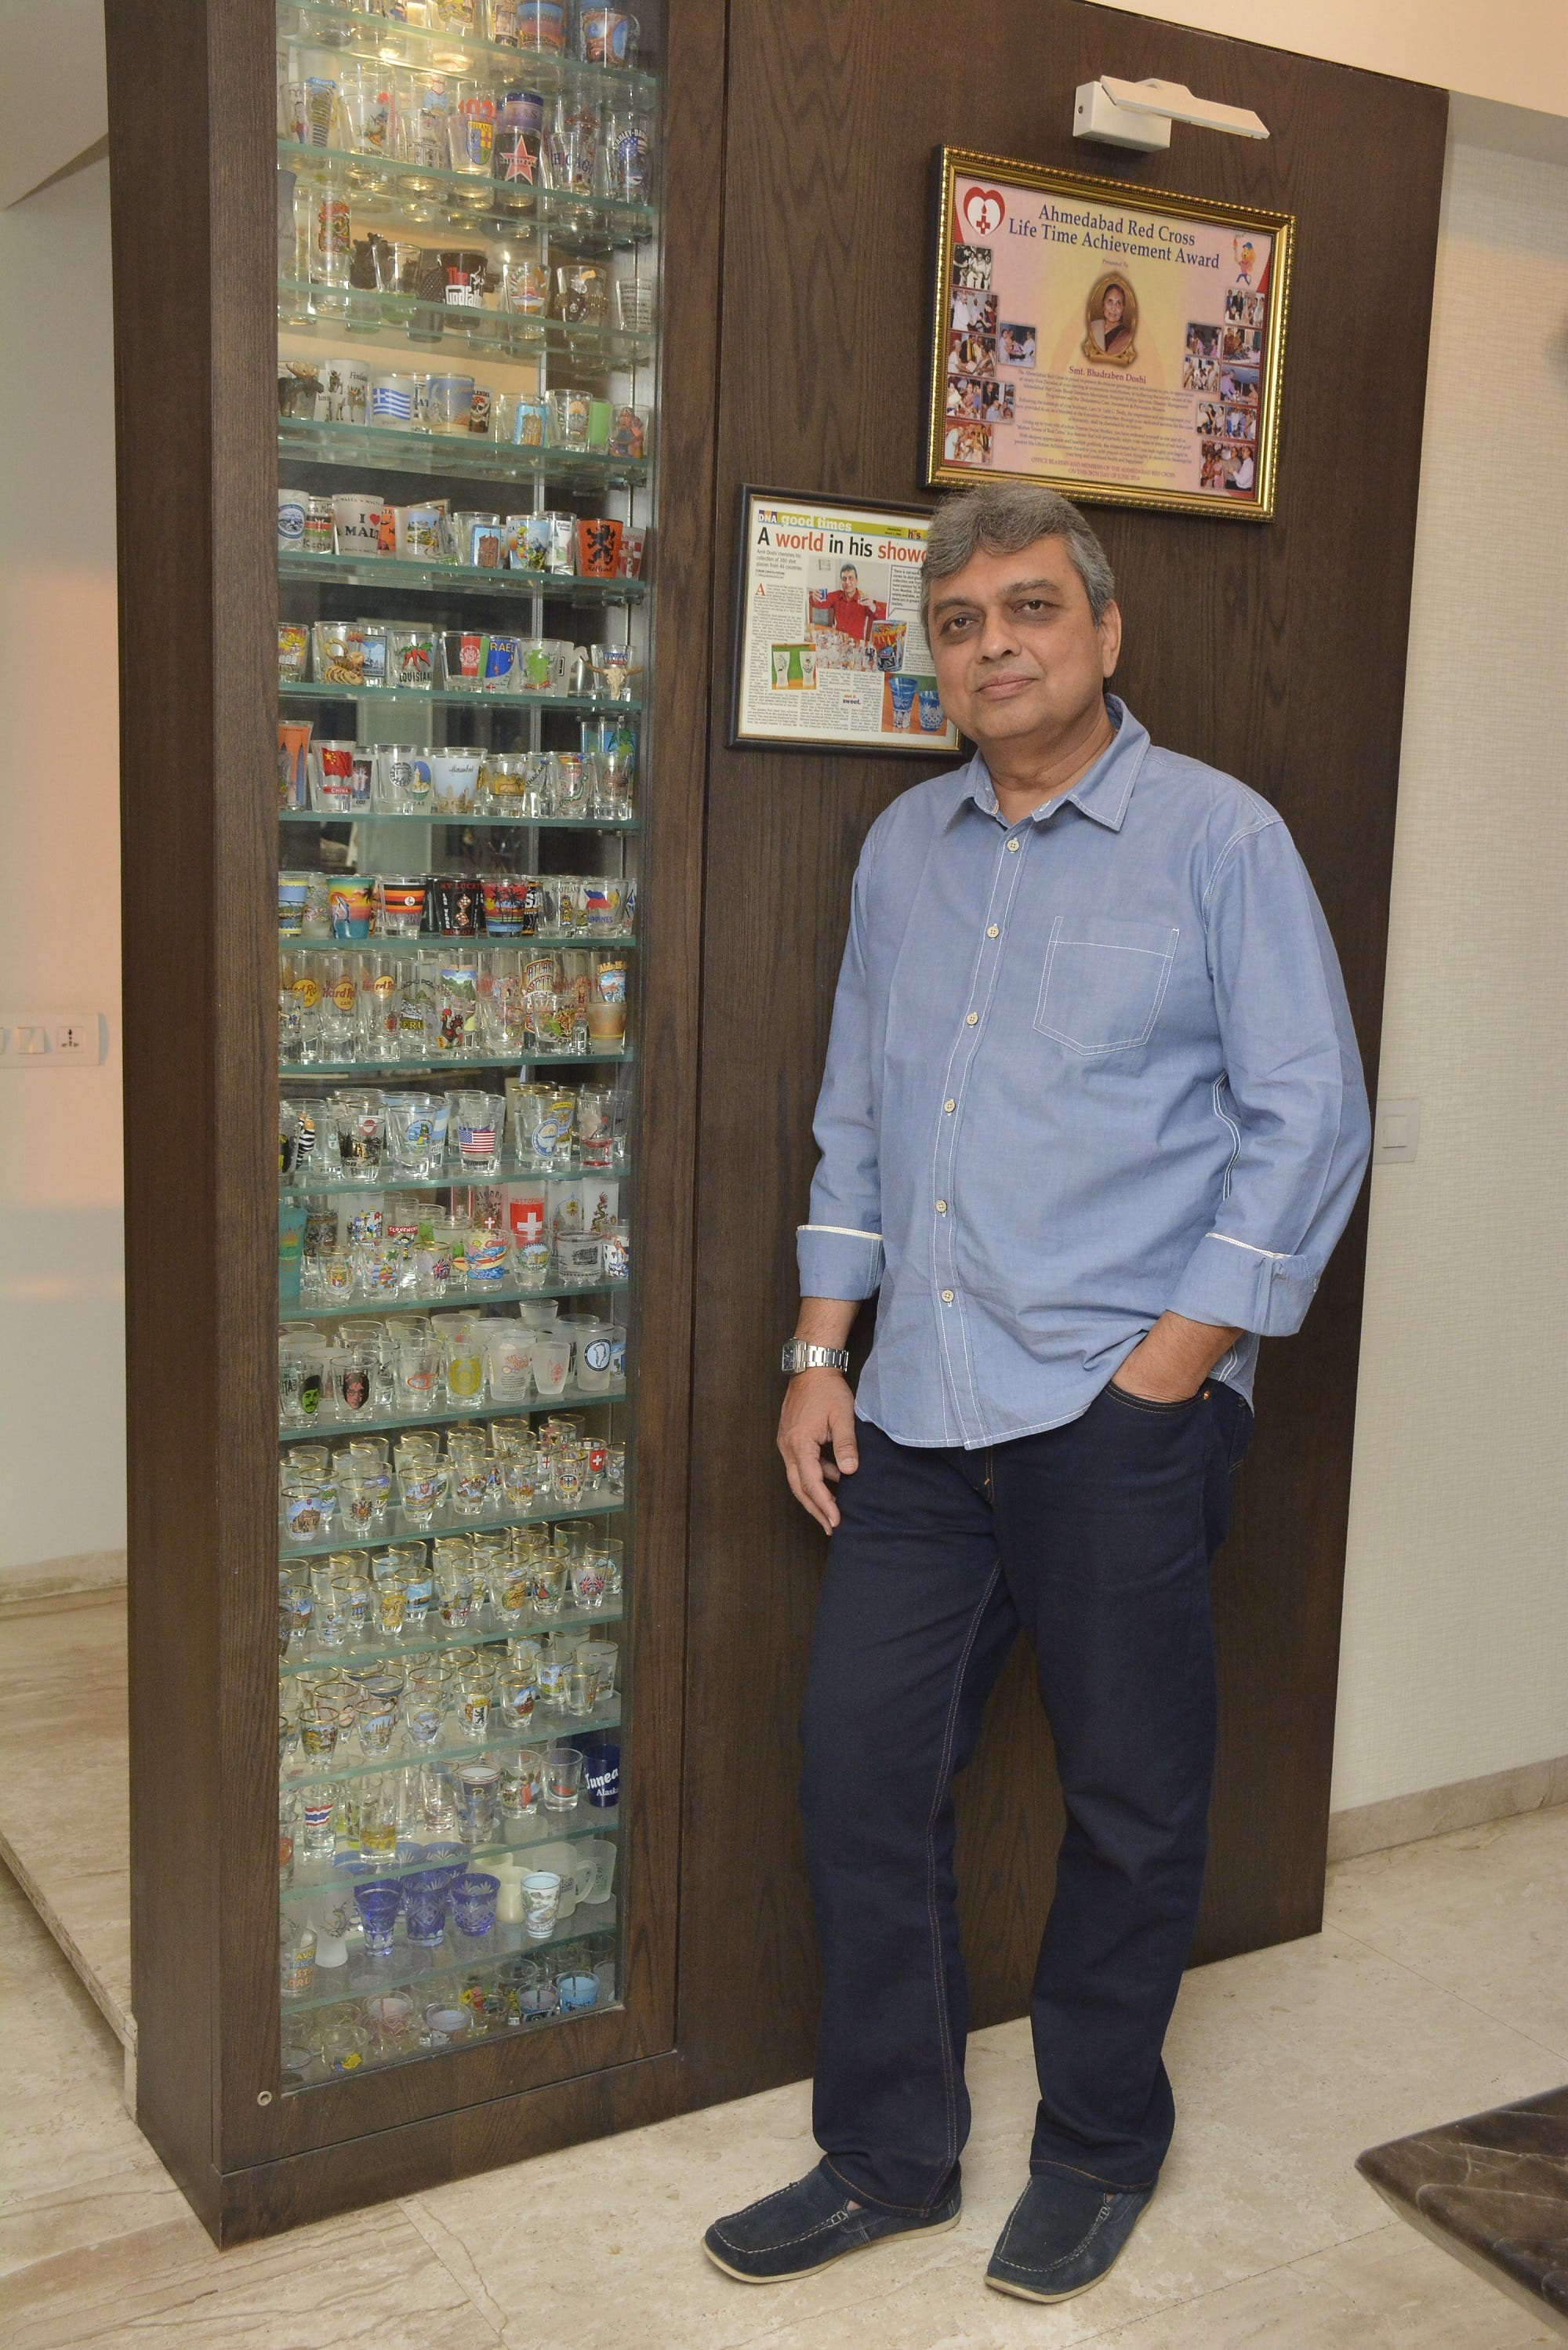 Doshi's 18-layer showcase is the envy of many visitors. (Supplied)